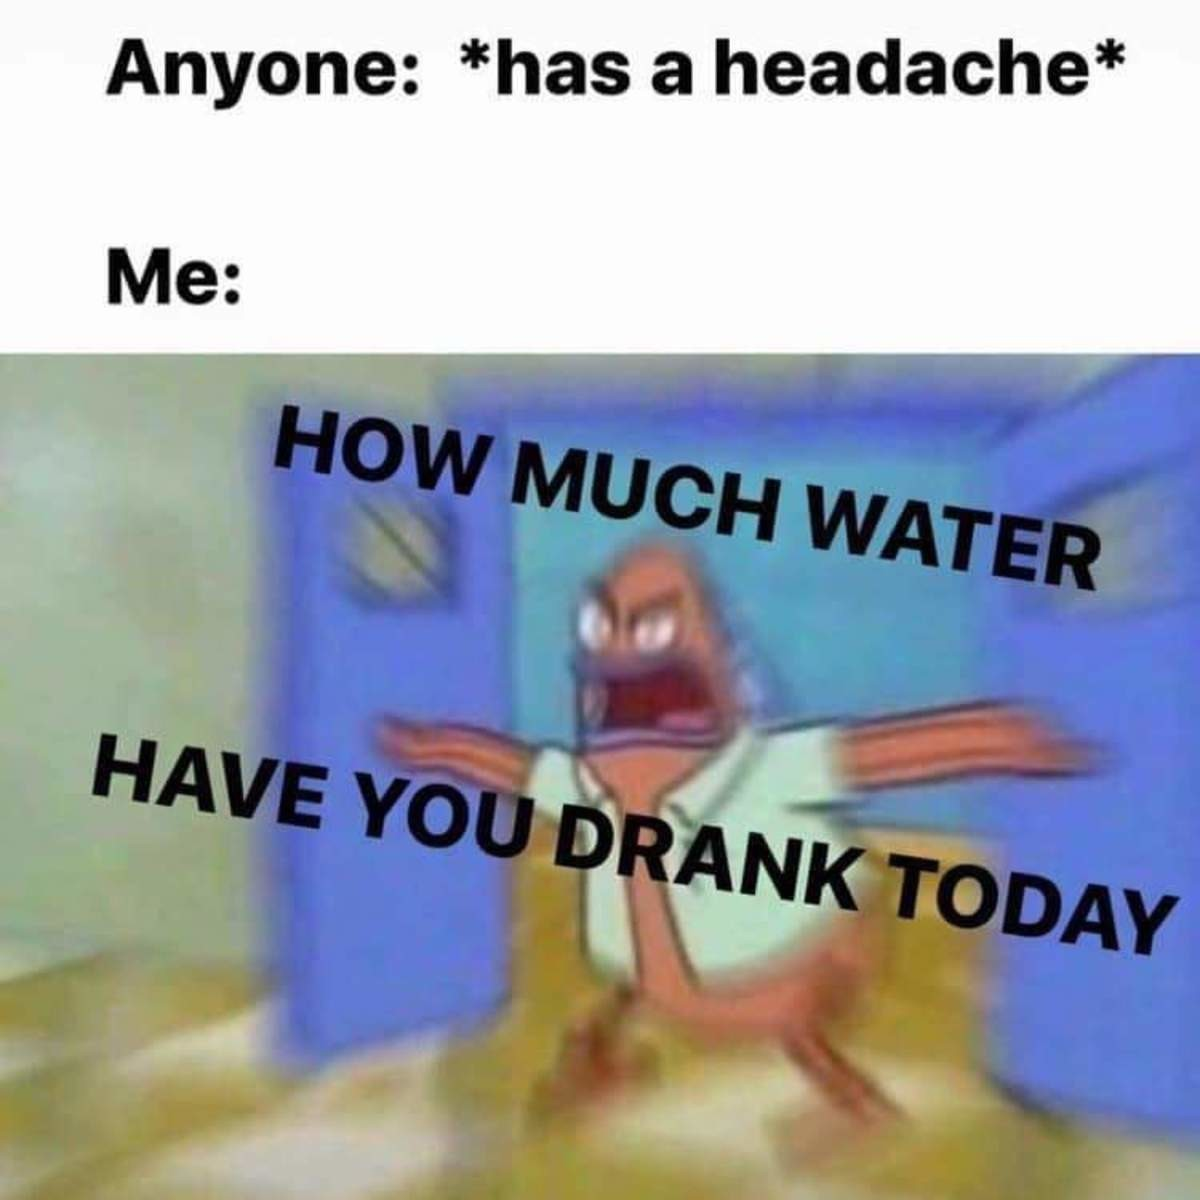 Avg. recommended amount for adults is between 2-4 liters per day - meme